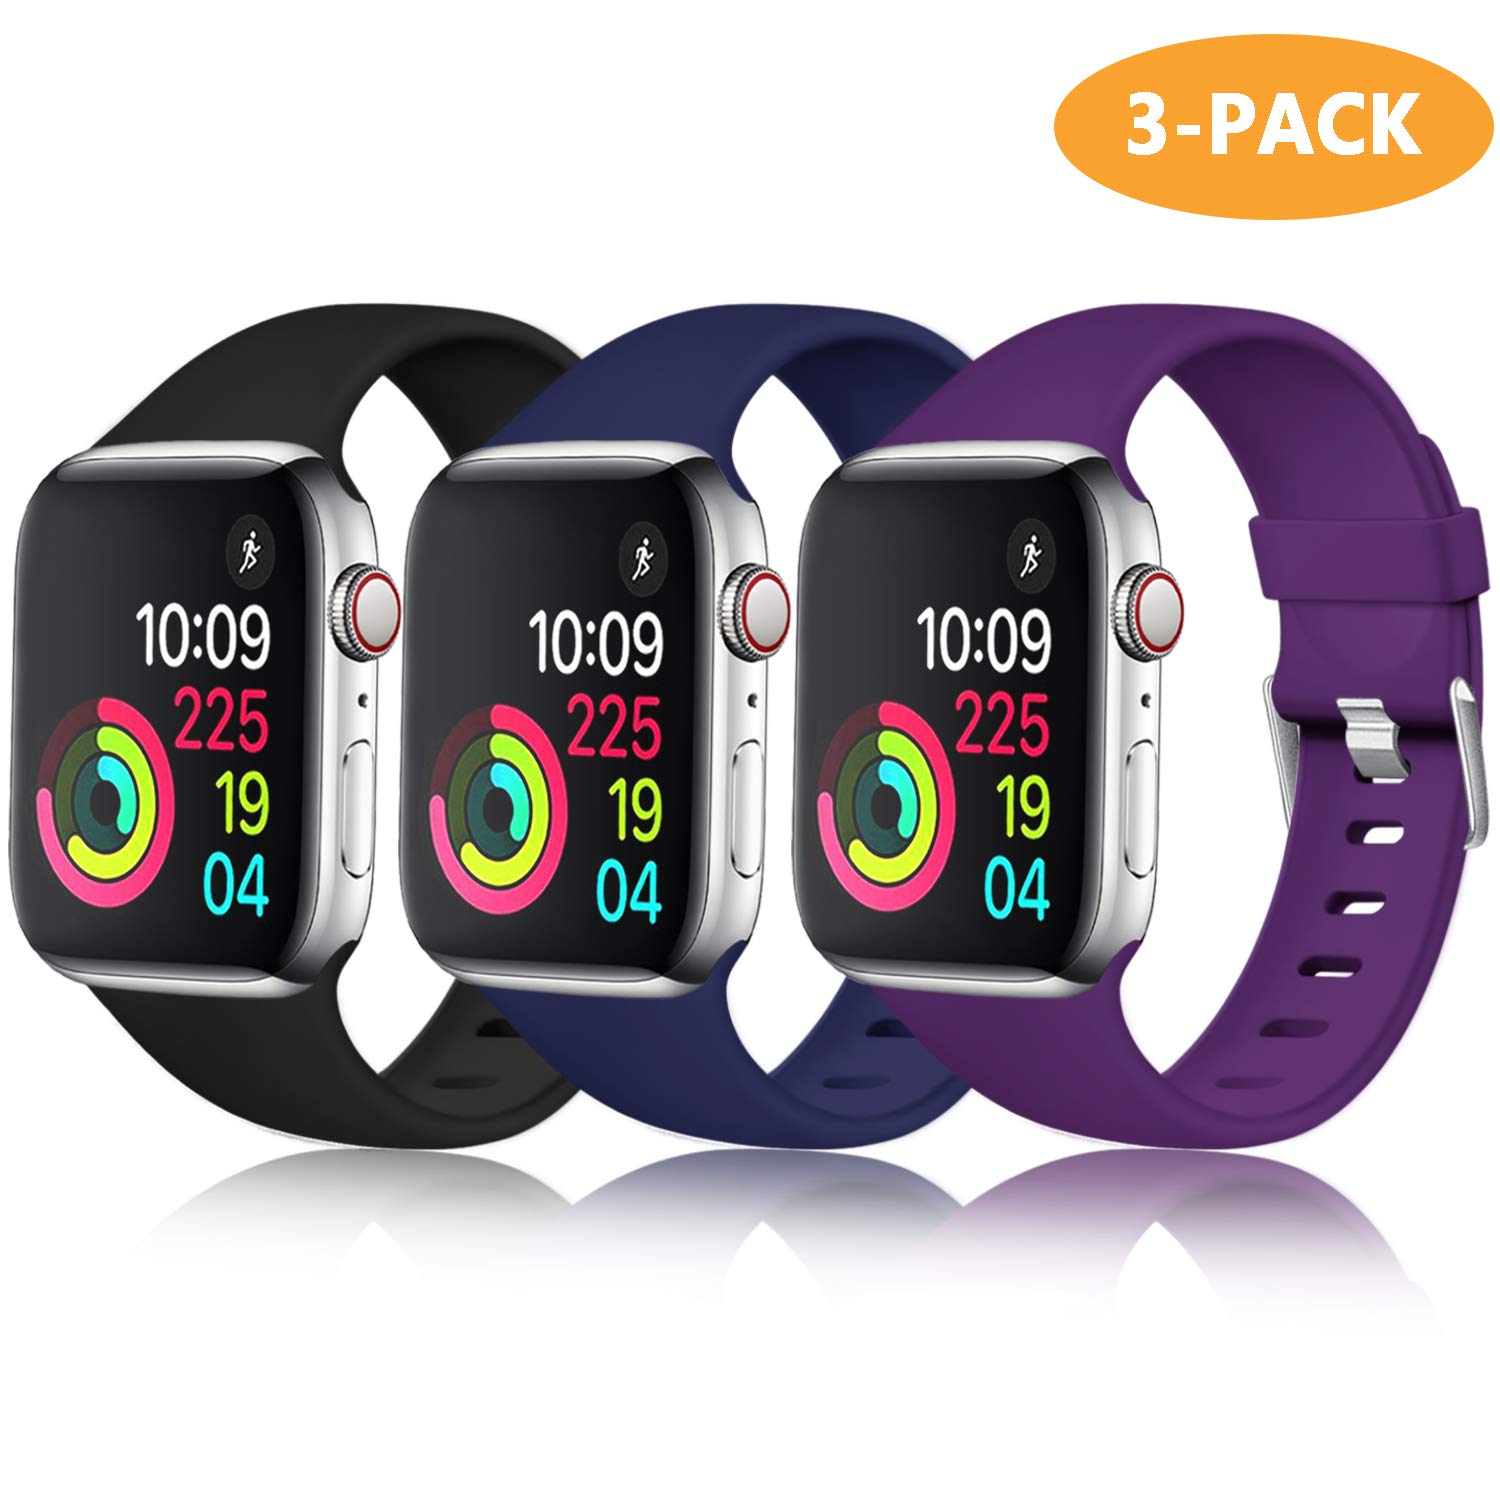 Laffav Compatible with Apple Watch Band 40mm 38mm for Women Men, Black, Midnight Blue, Purple, 3 Pack, S/M